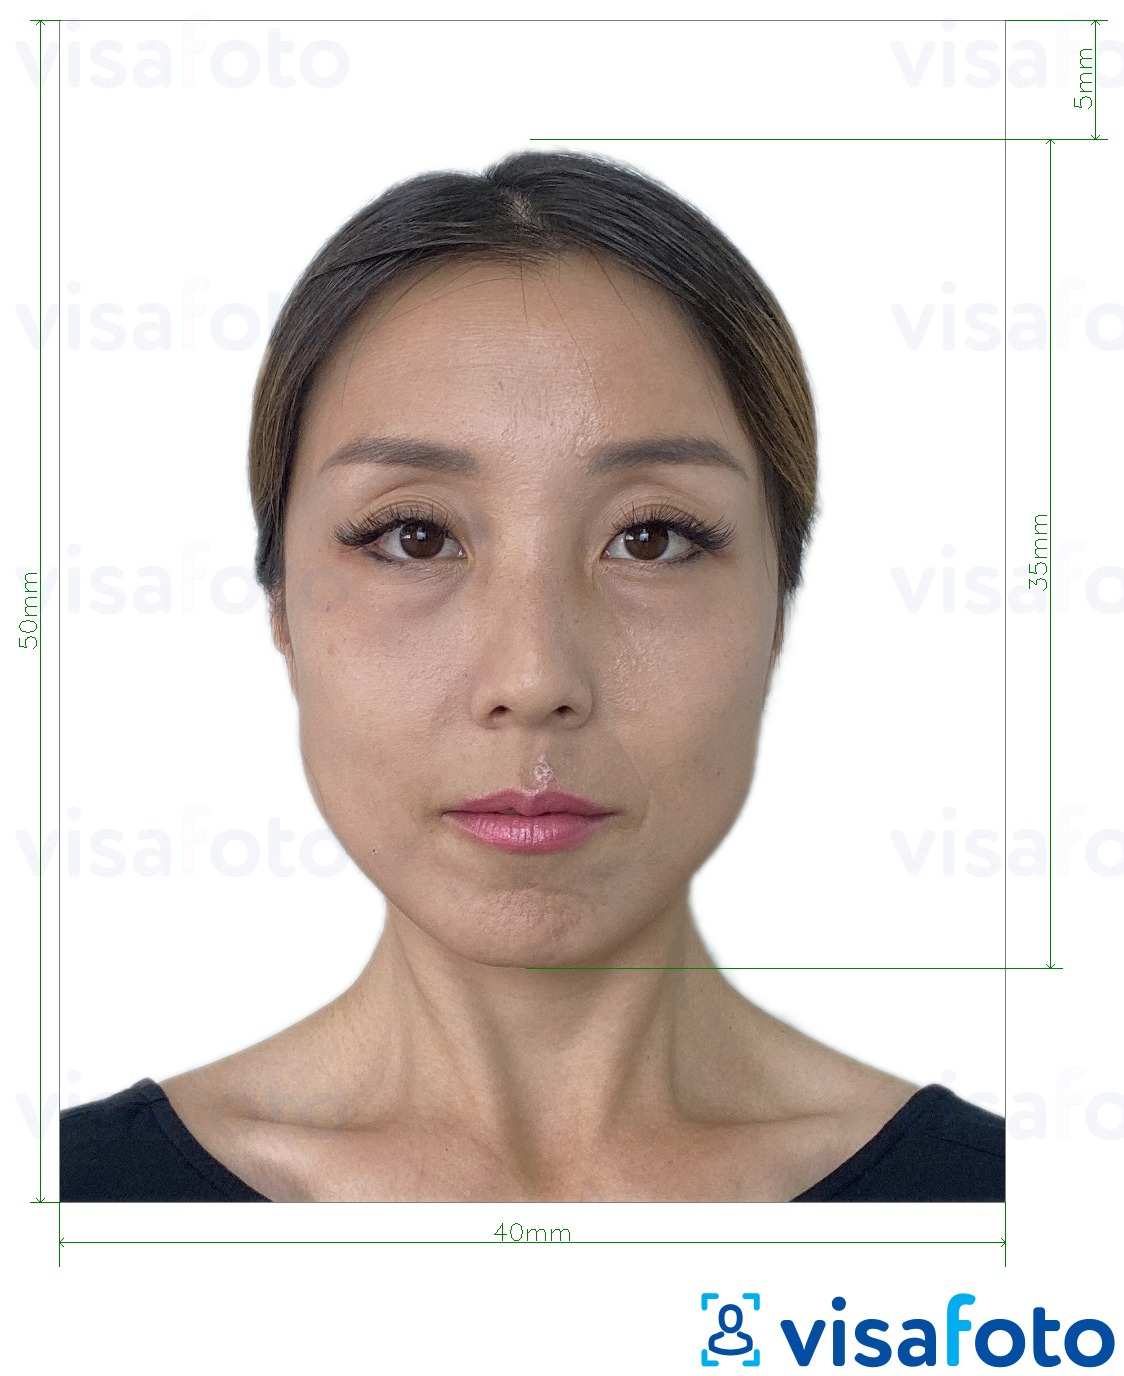 Example of photo for Hong Kong Visa with exact size specification